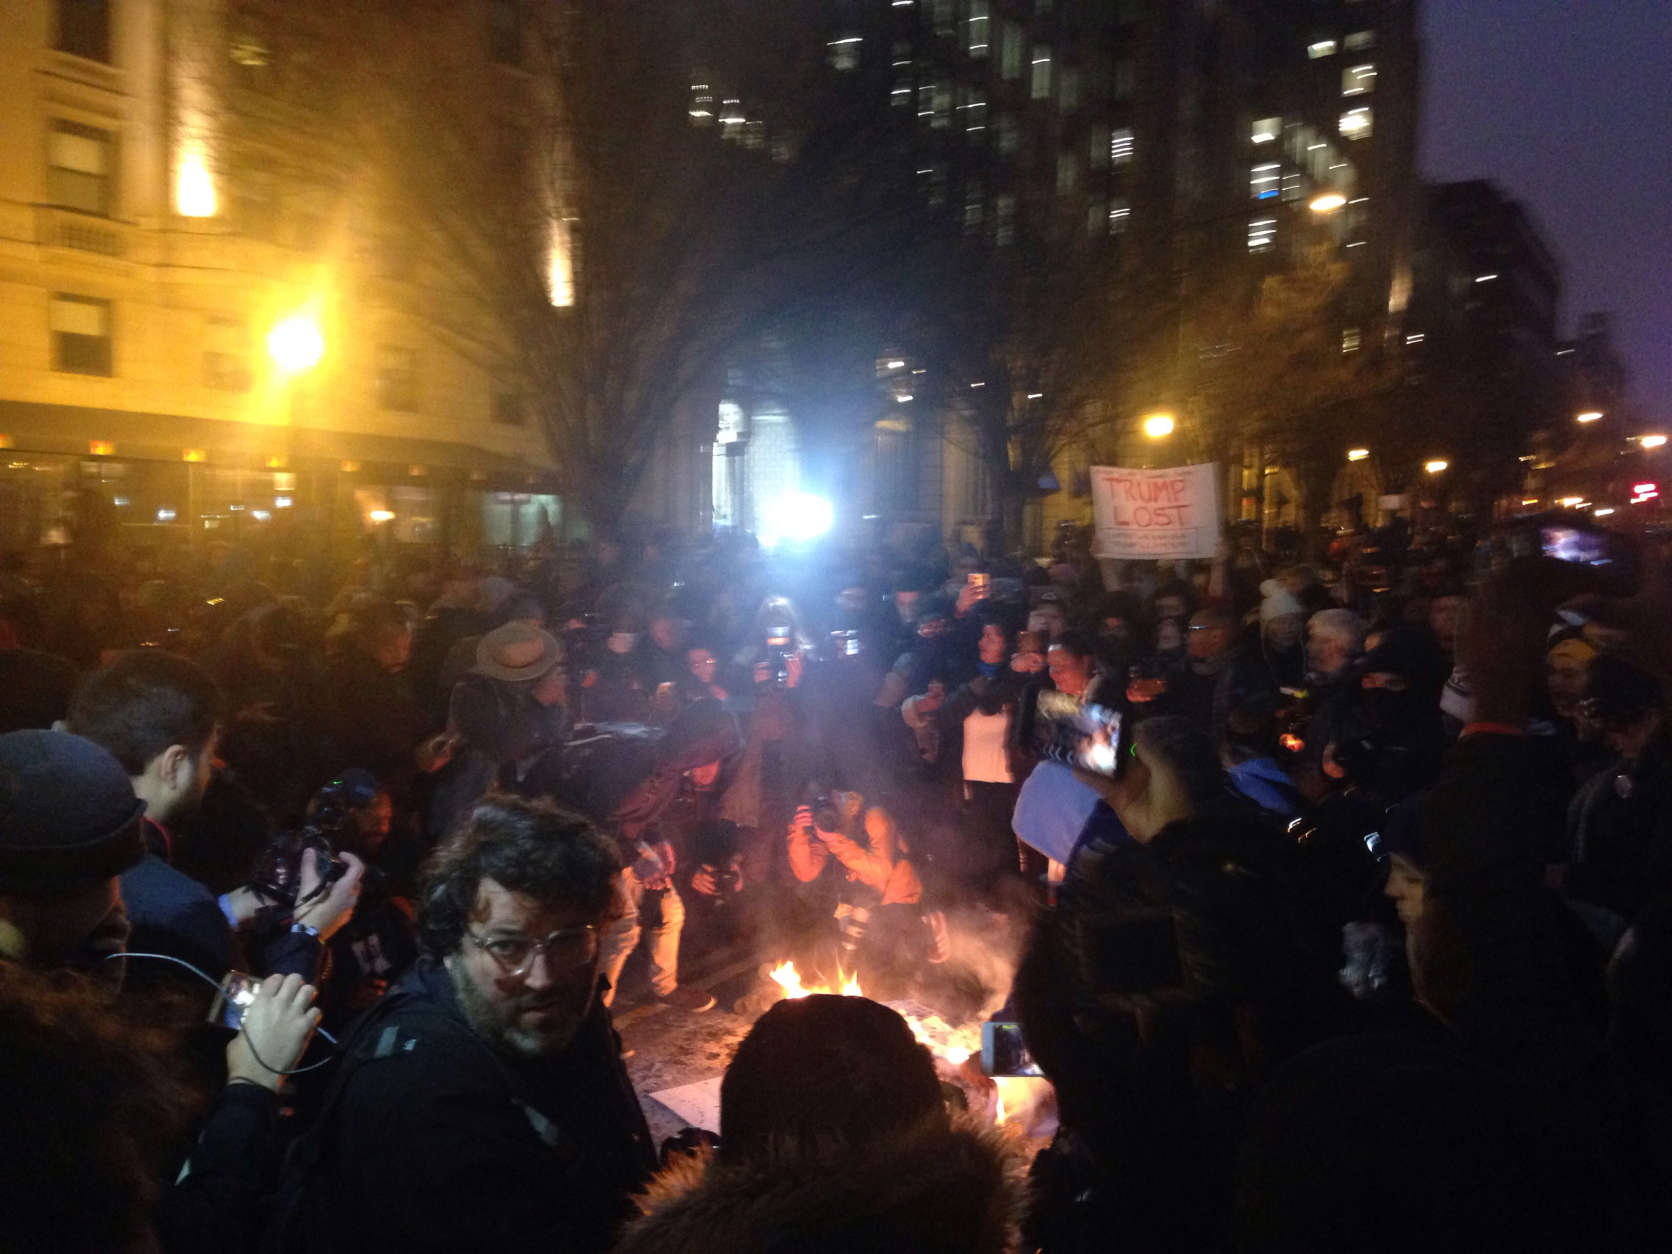 Inauguration protests continue after sun sets in D.C. on Friday, Jan. 20, 2017. (WTOP/Megan Cloherty)